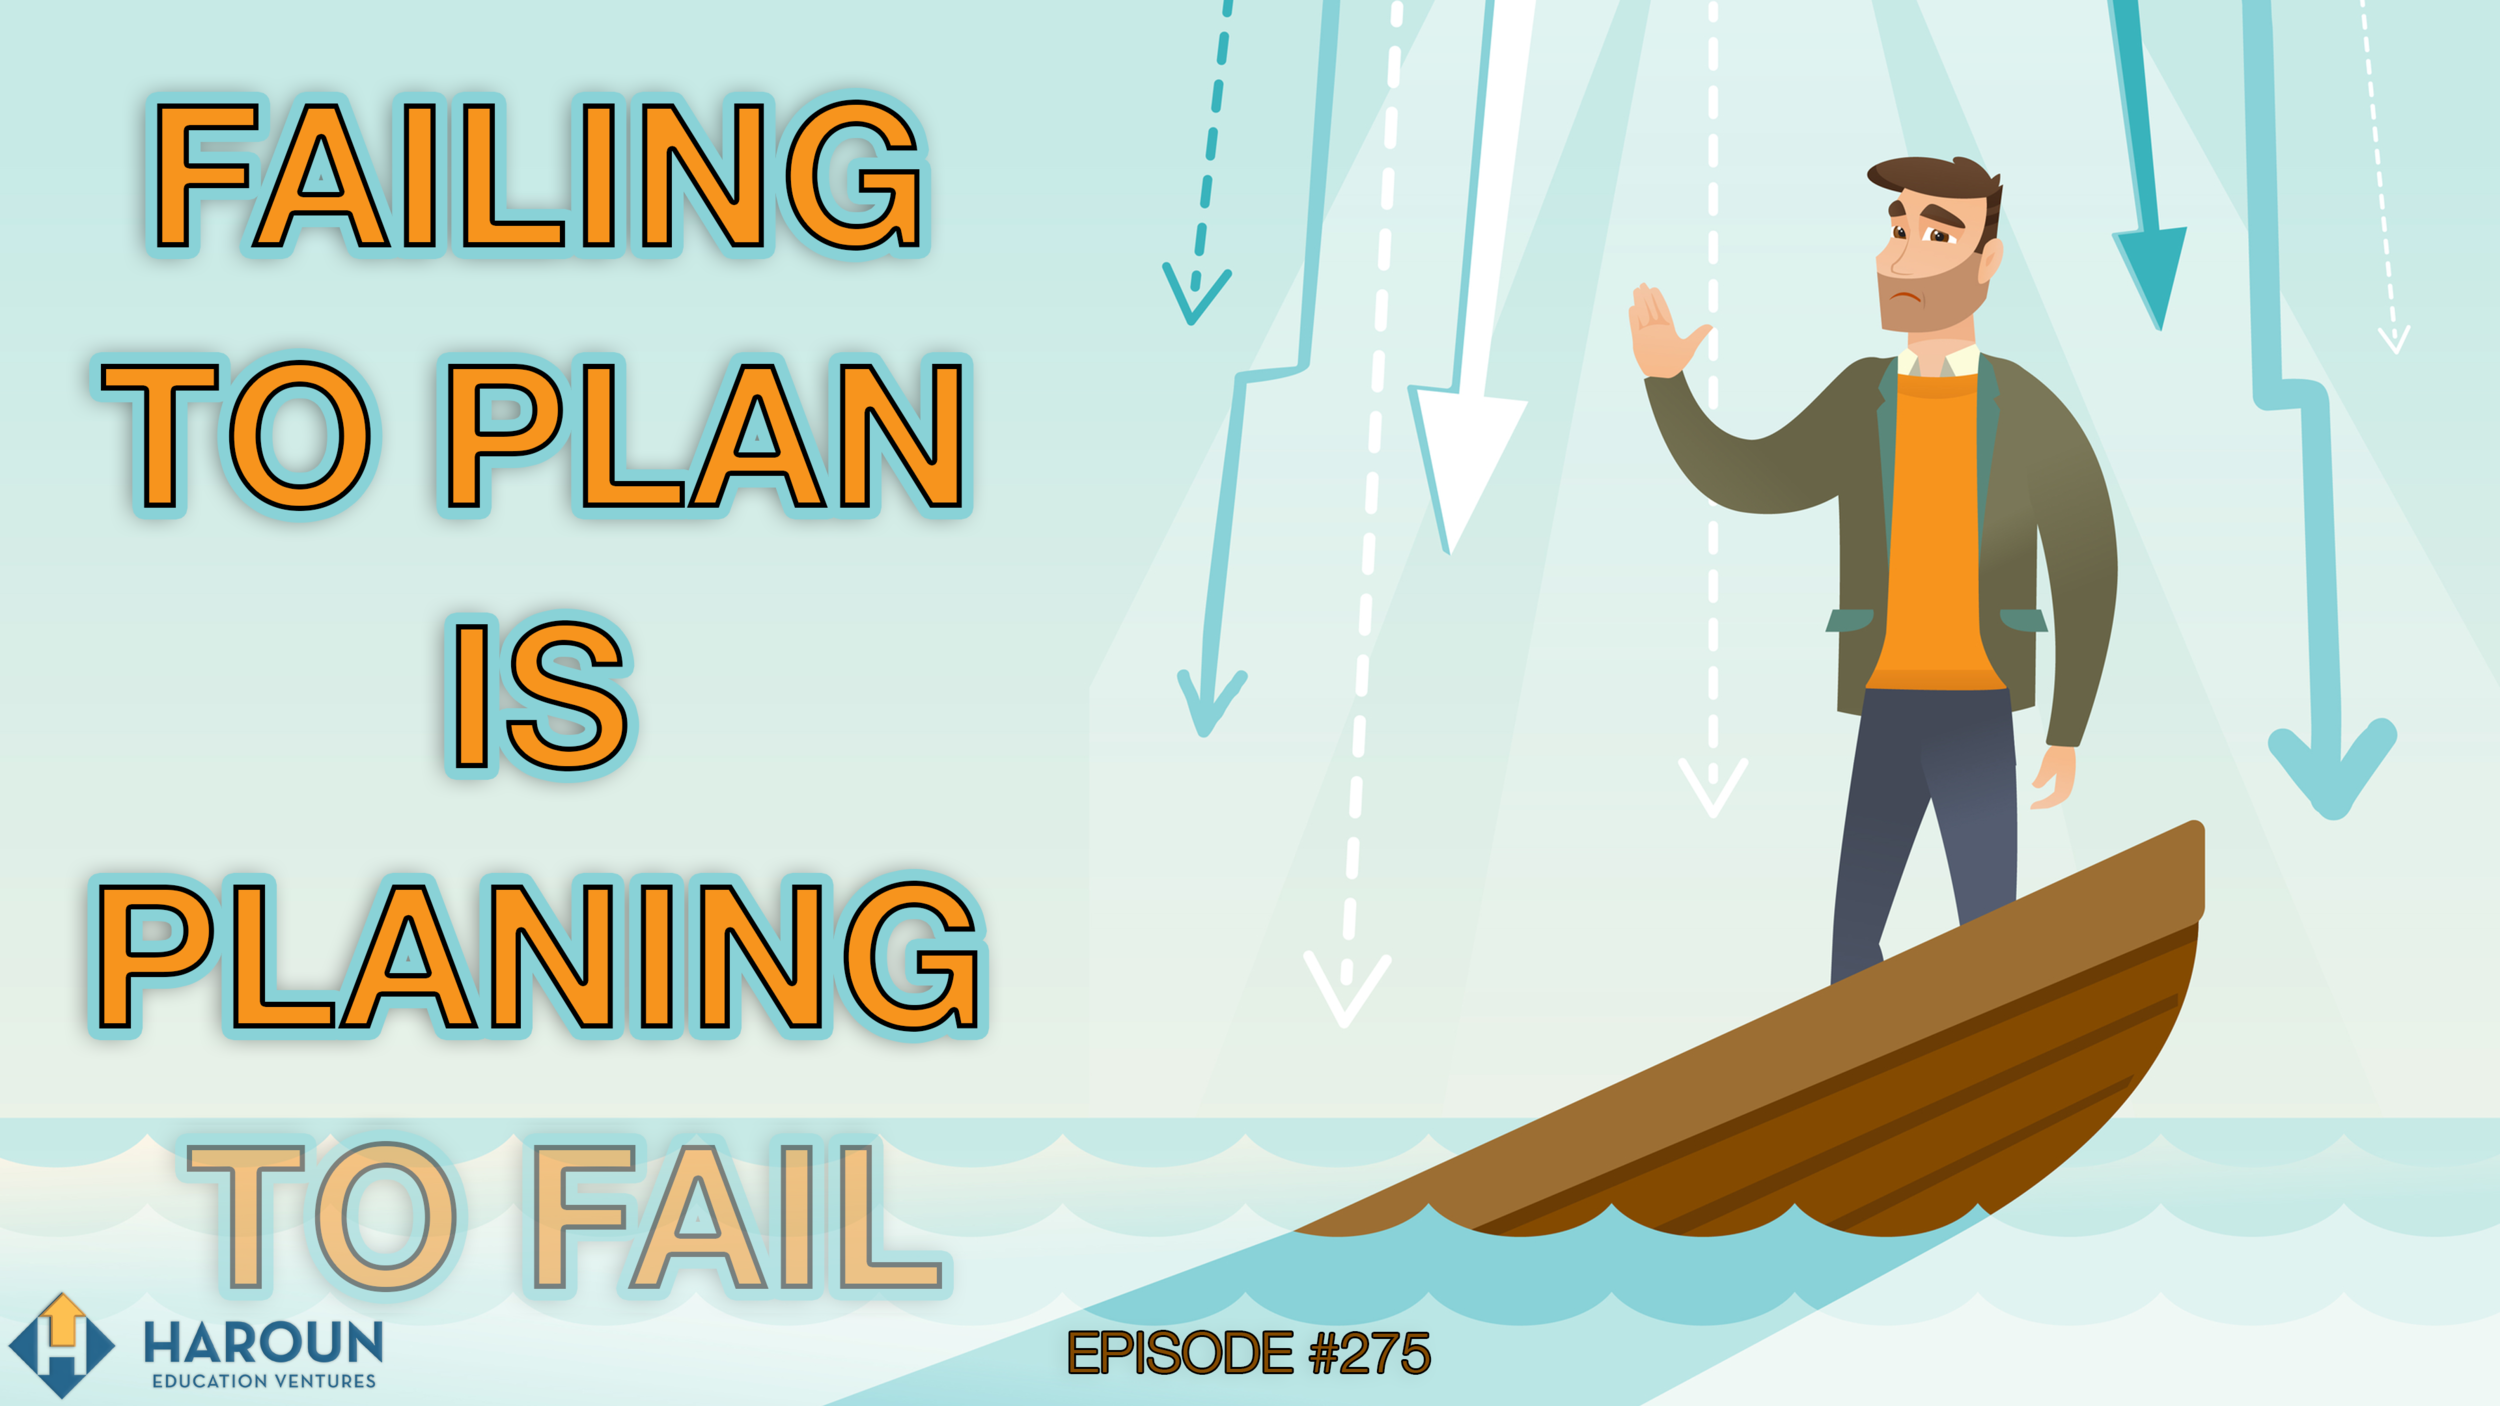 day_275_5_2_19_failing to plan is planning to fail.png